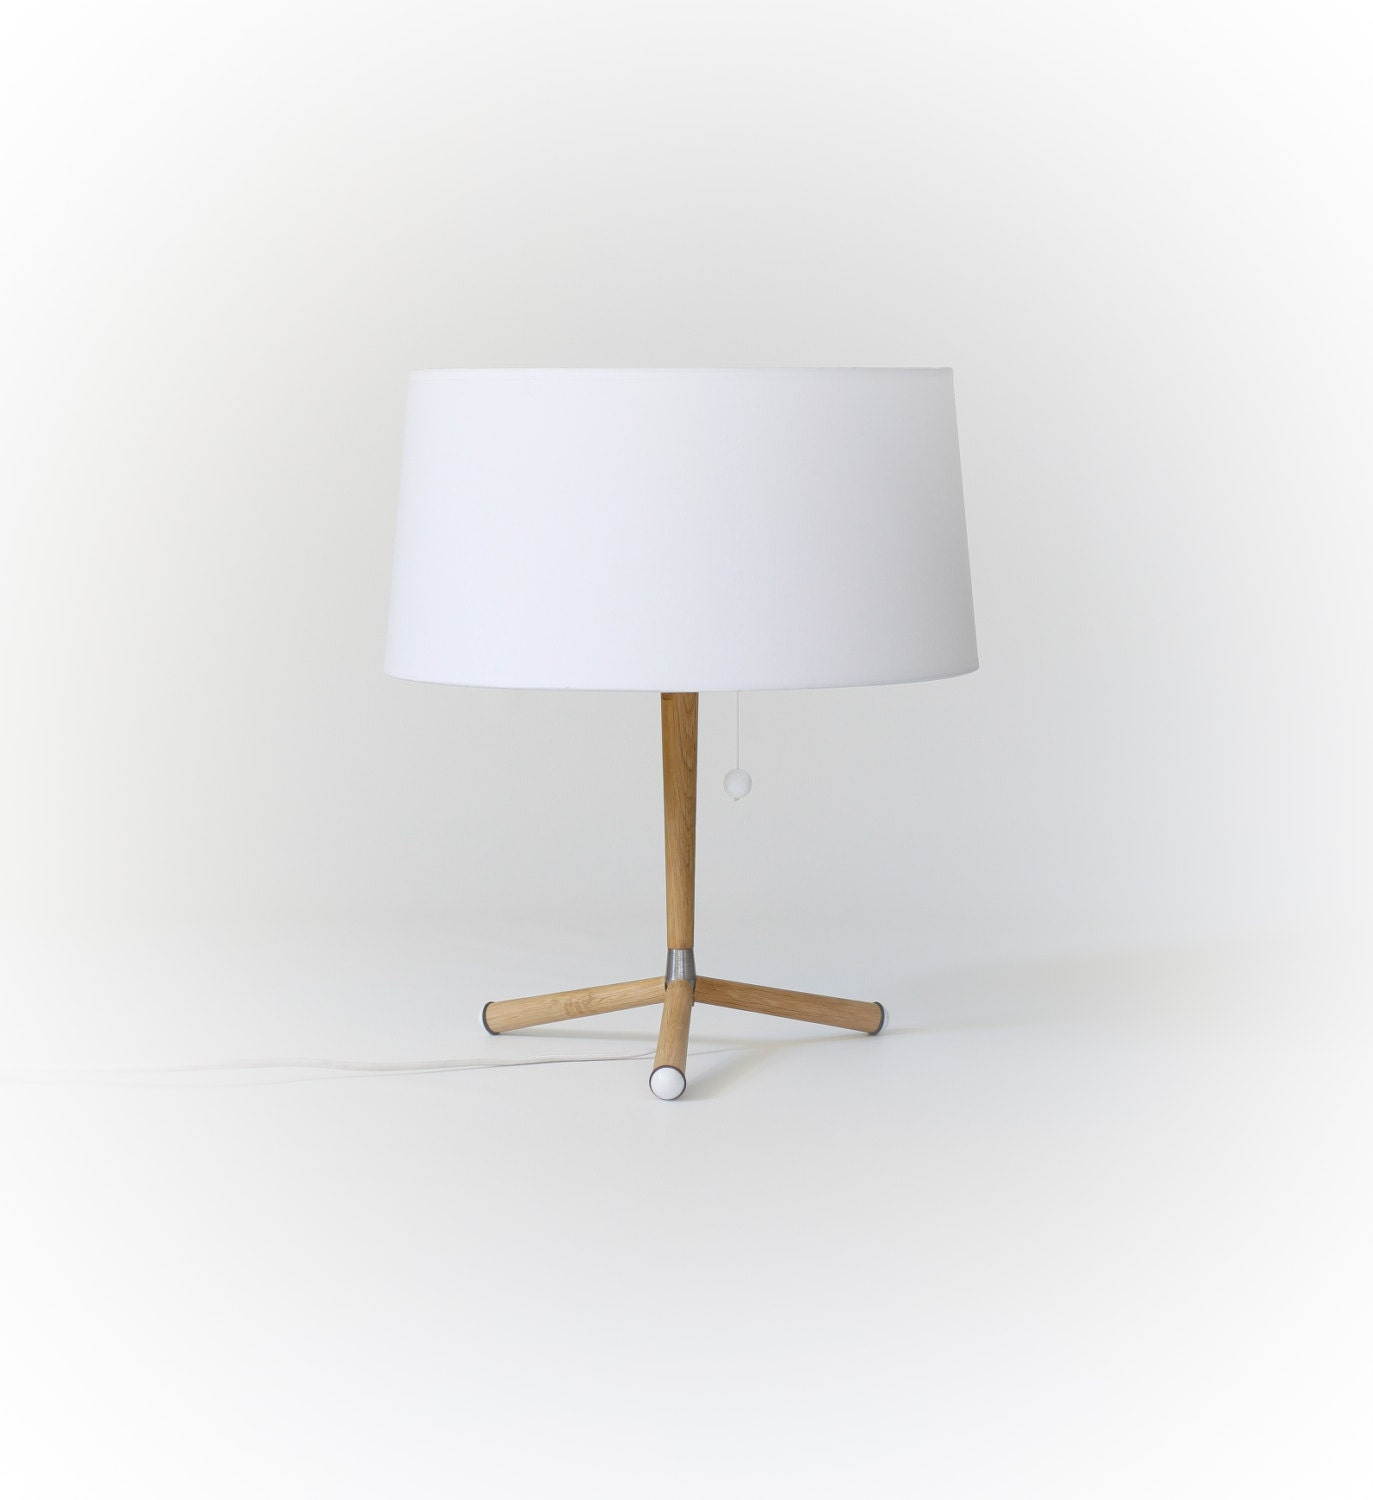 new table lamp in oak wood cotton lamp shade. Black Bedroom Furniture Sets. Home Design Ideas